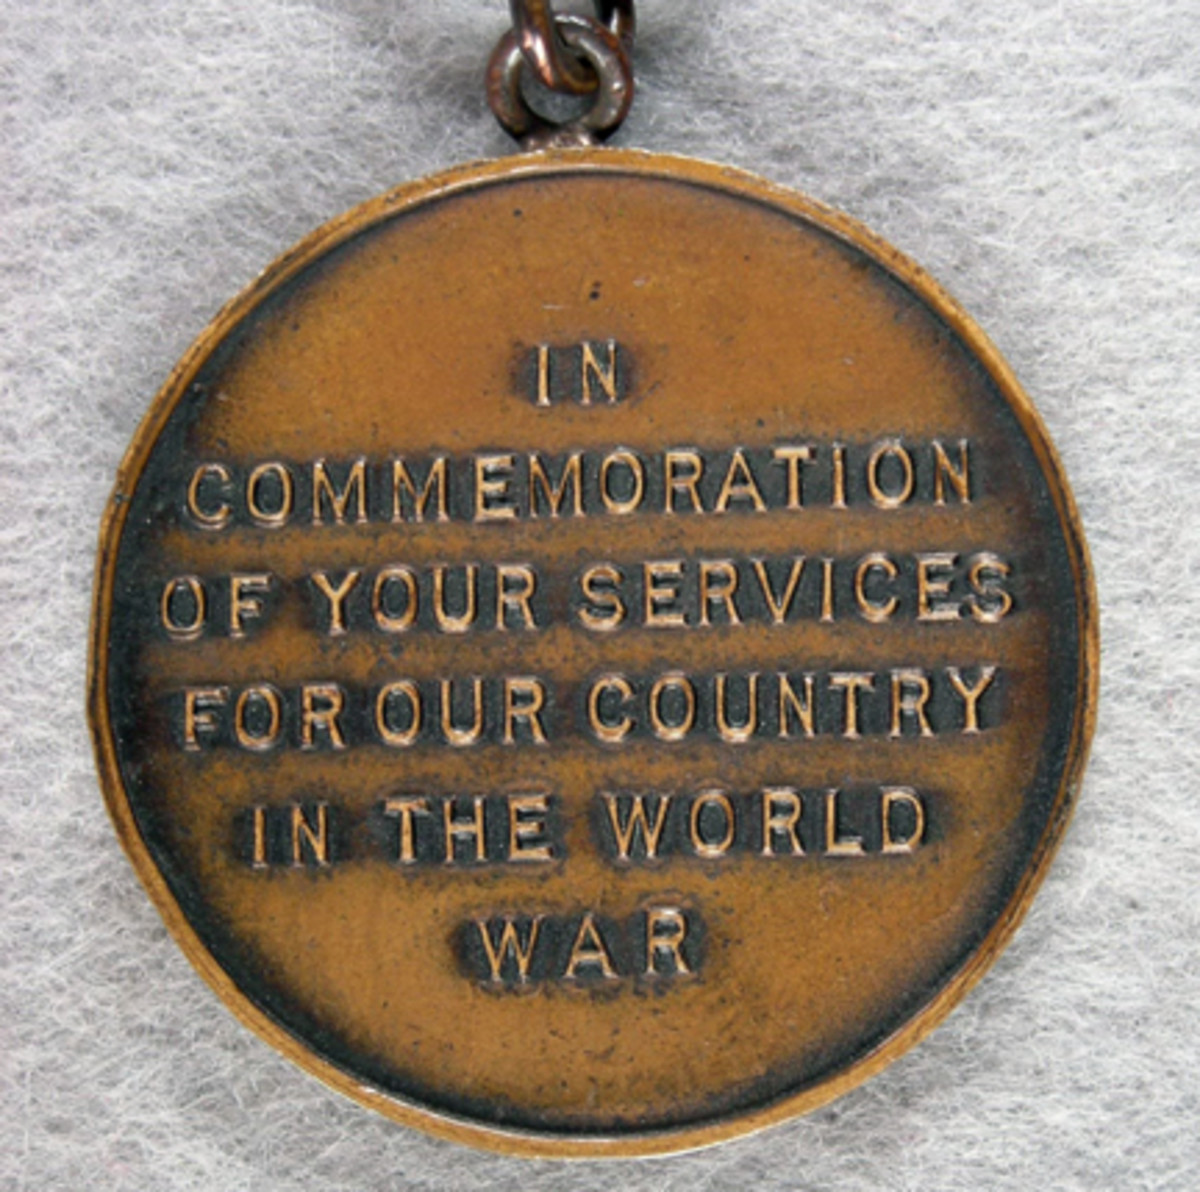 """The inscription of the fob's reverse indicates it was presented by the Knights of Columbus """"In commemoration of your service for our country in the world war."""""""